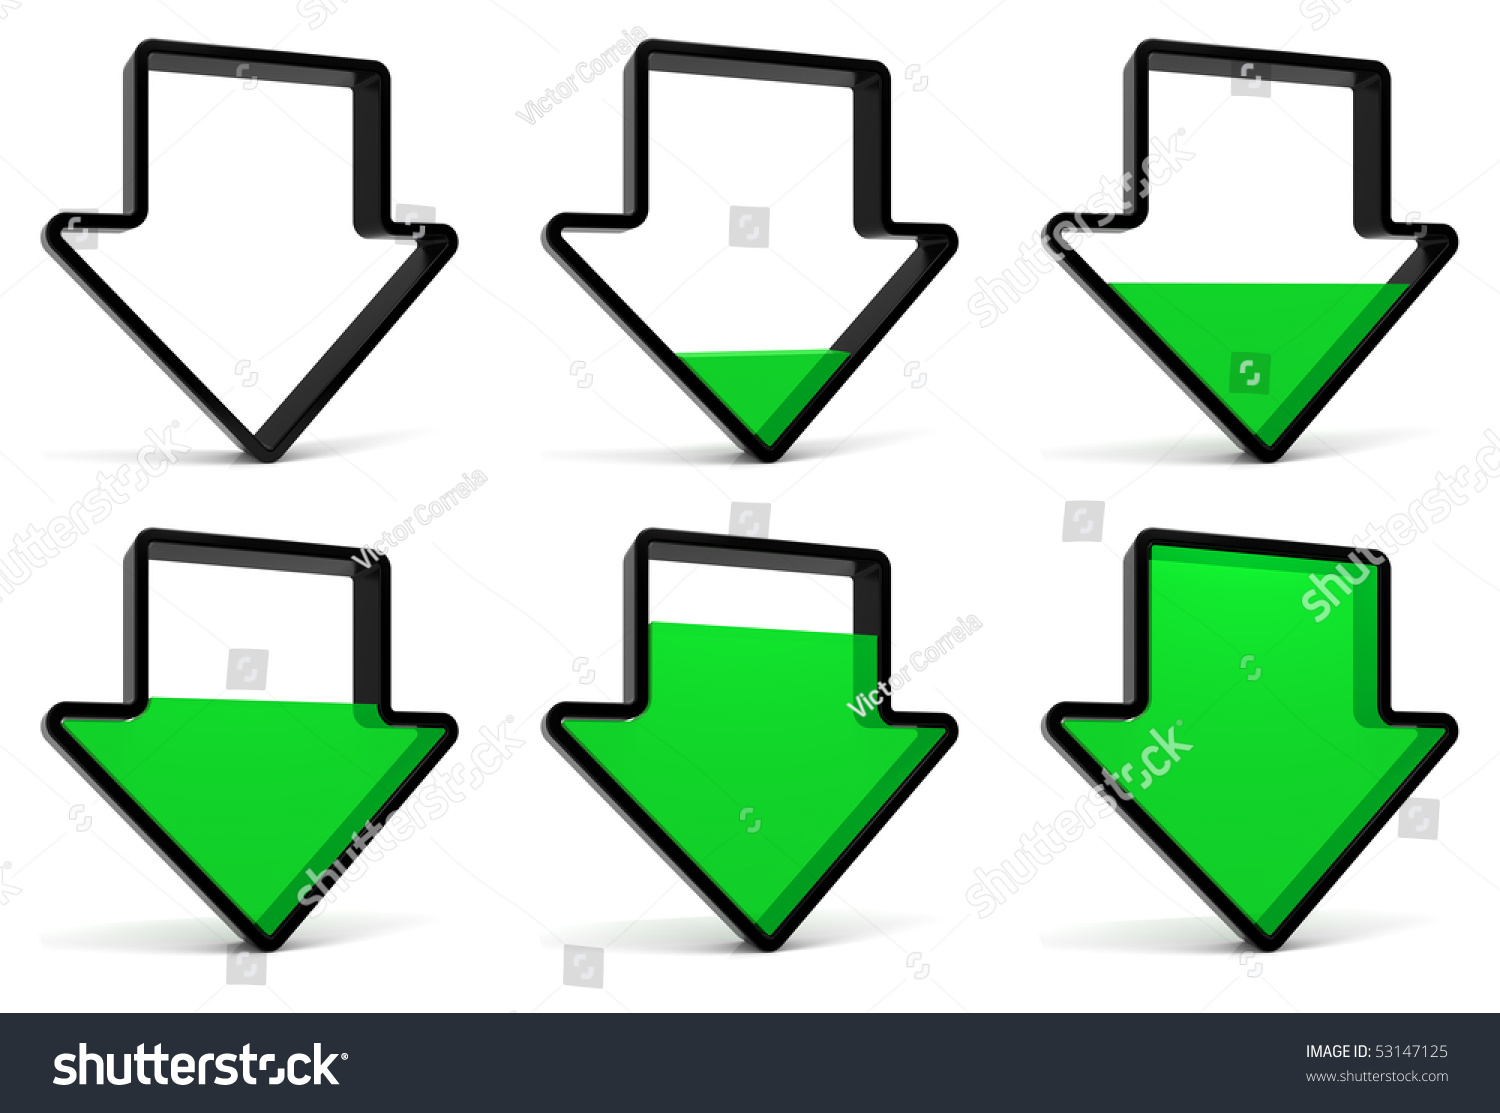 Royalty Free Stock Illustration Of Download Symbol Start Phase 1